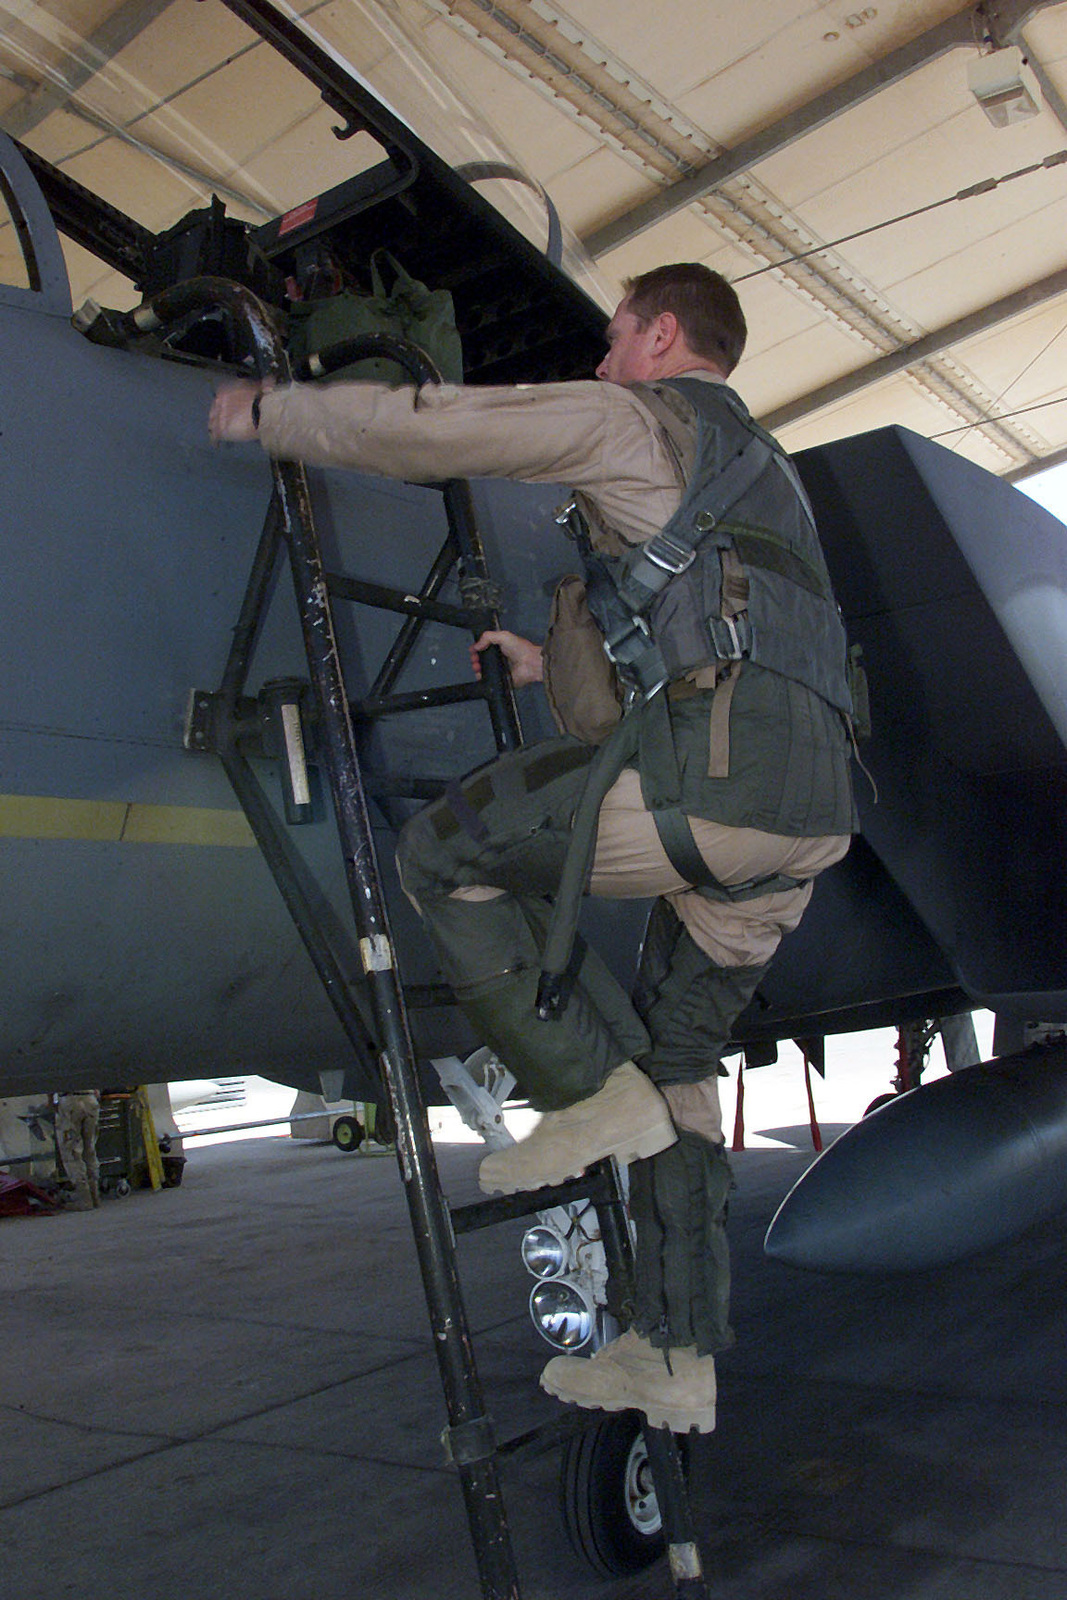 US Air Force Major Floyd Hancock a F-15 Eagle pilot from the 122nd Fighter Squadron, Louisiana Air National Guard, climbs a ladder to get into his aircraft prior to a mission at Prince Sultan Air Base, Saudi Arabia. MAJ Hancock is a part of the coalition forces of the 363rd Air Expeditionary Wing that enforces the no-fly and no-drive zone in Southern Iraq to protect and defend against Iraqi aggression in support of Operation SOUTHERN WATCH